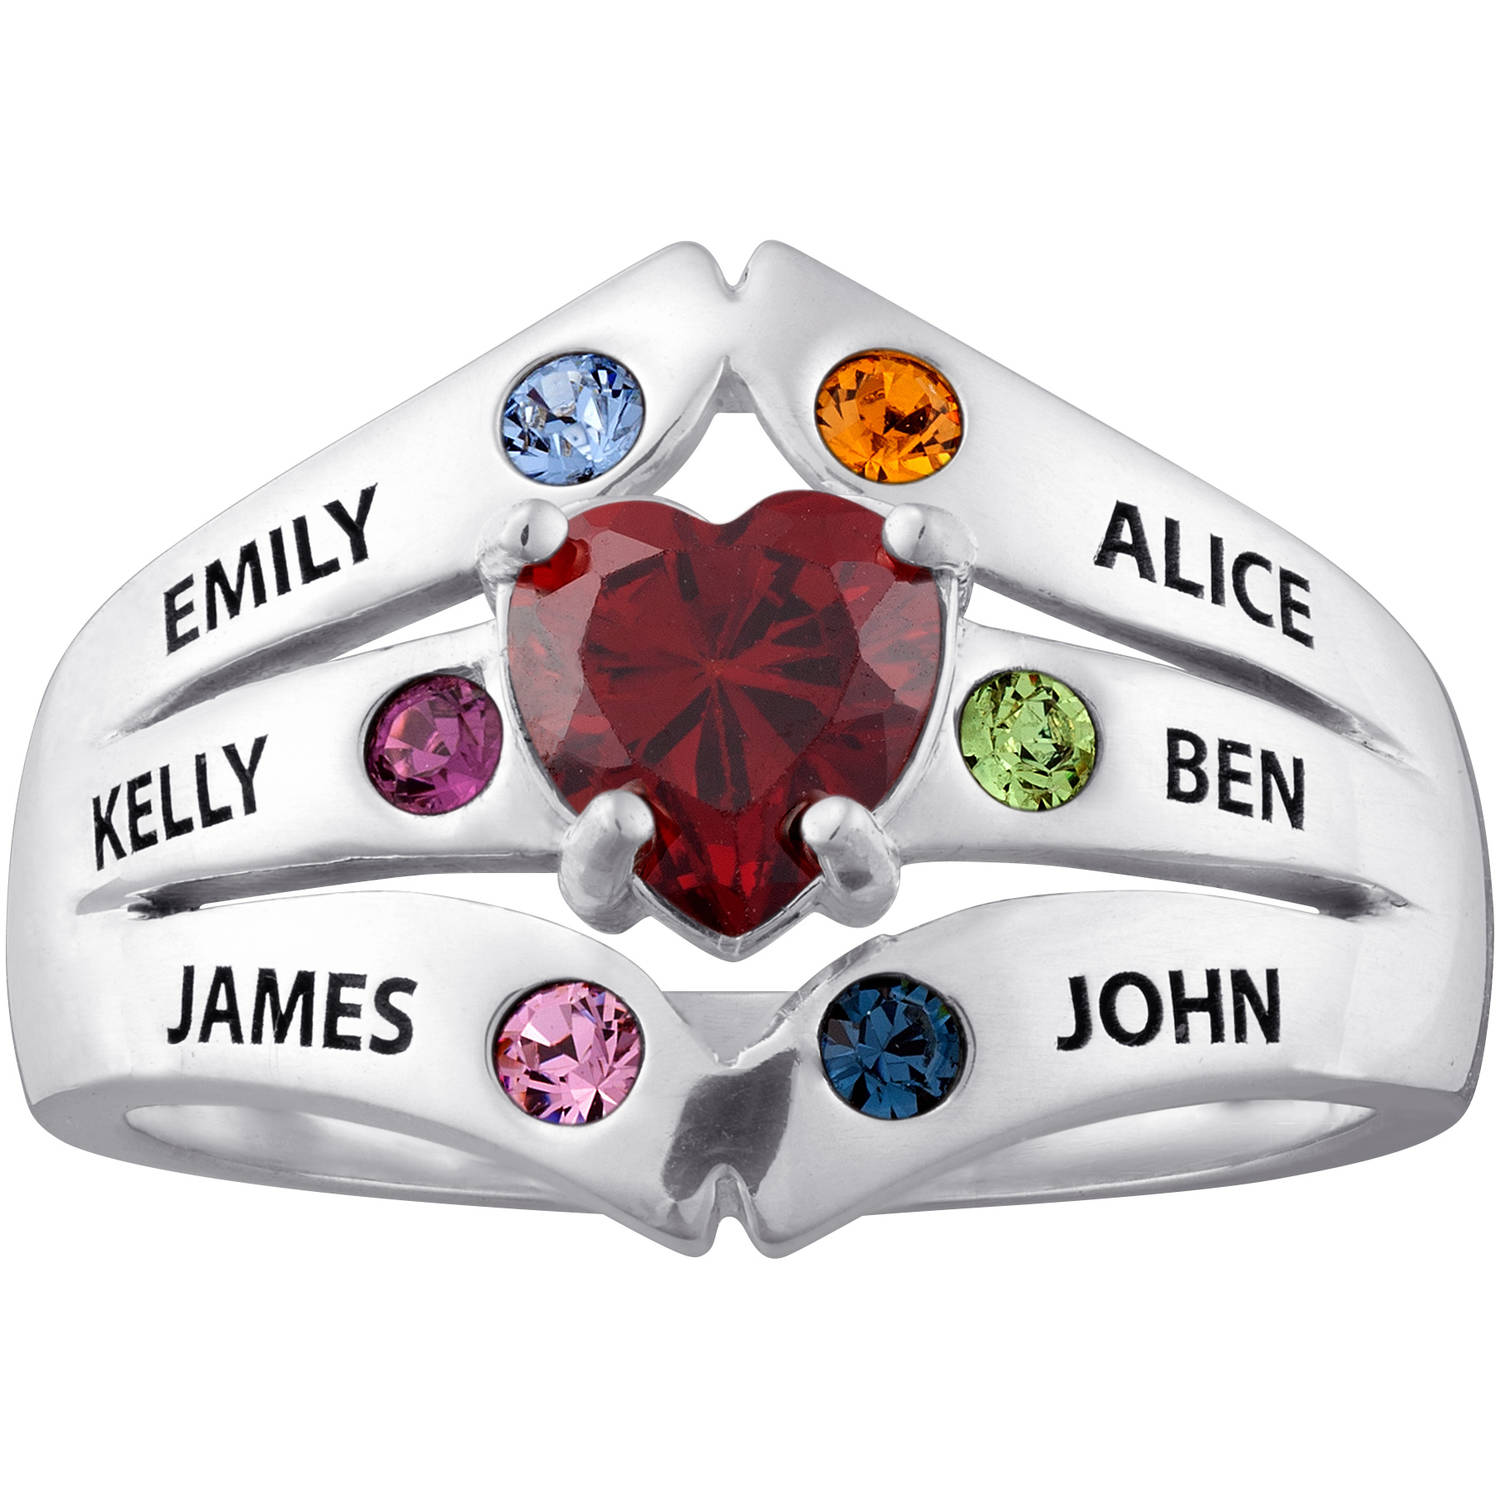 Personalized Sterling Silver or 14K Gold over Silver Birthstone Heart Mother's Ring